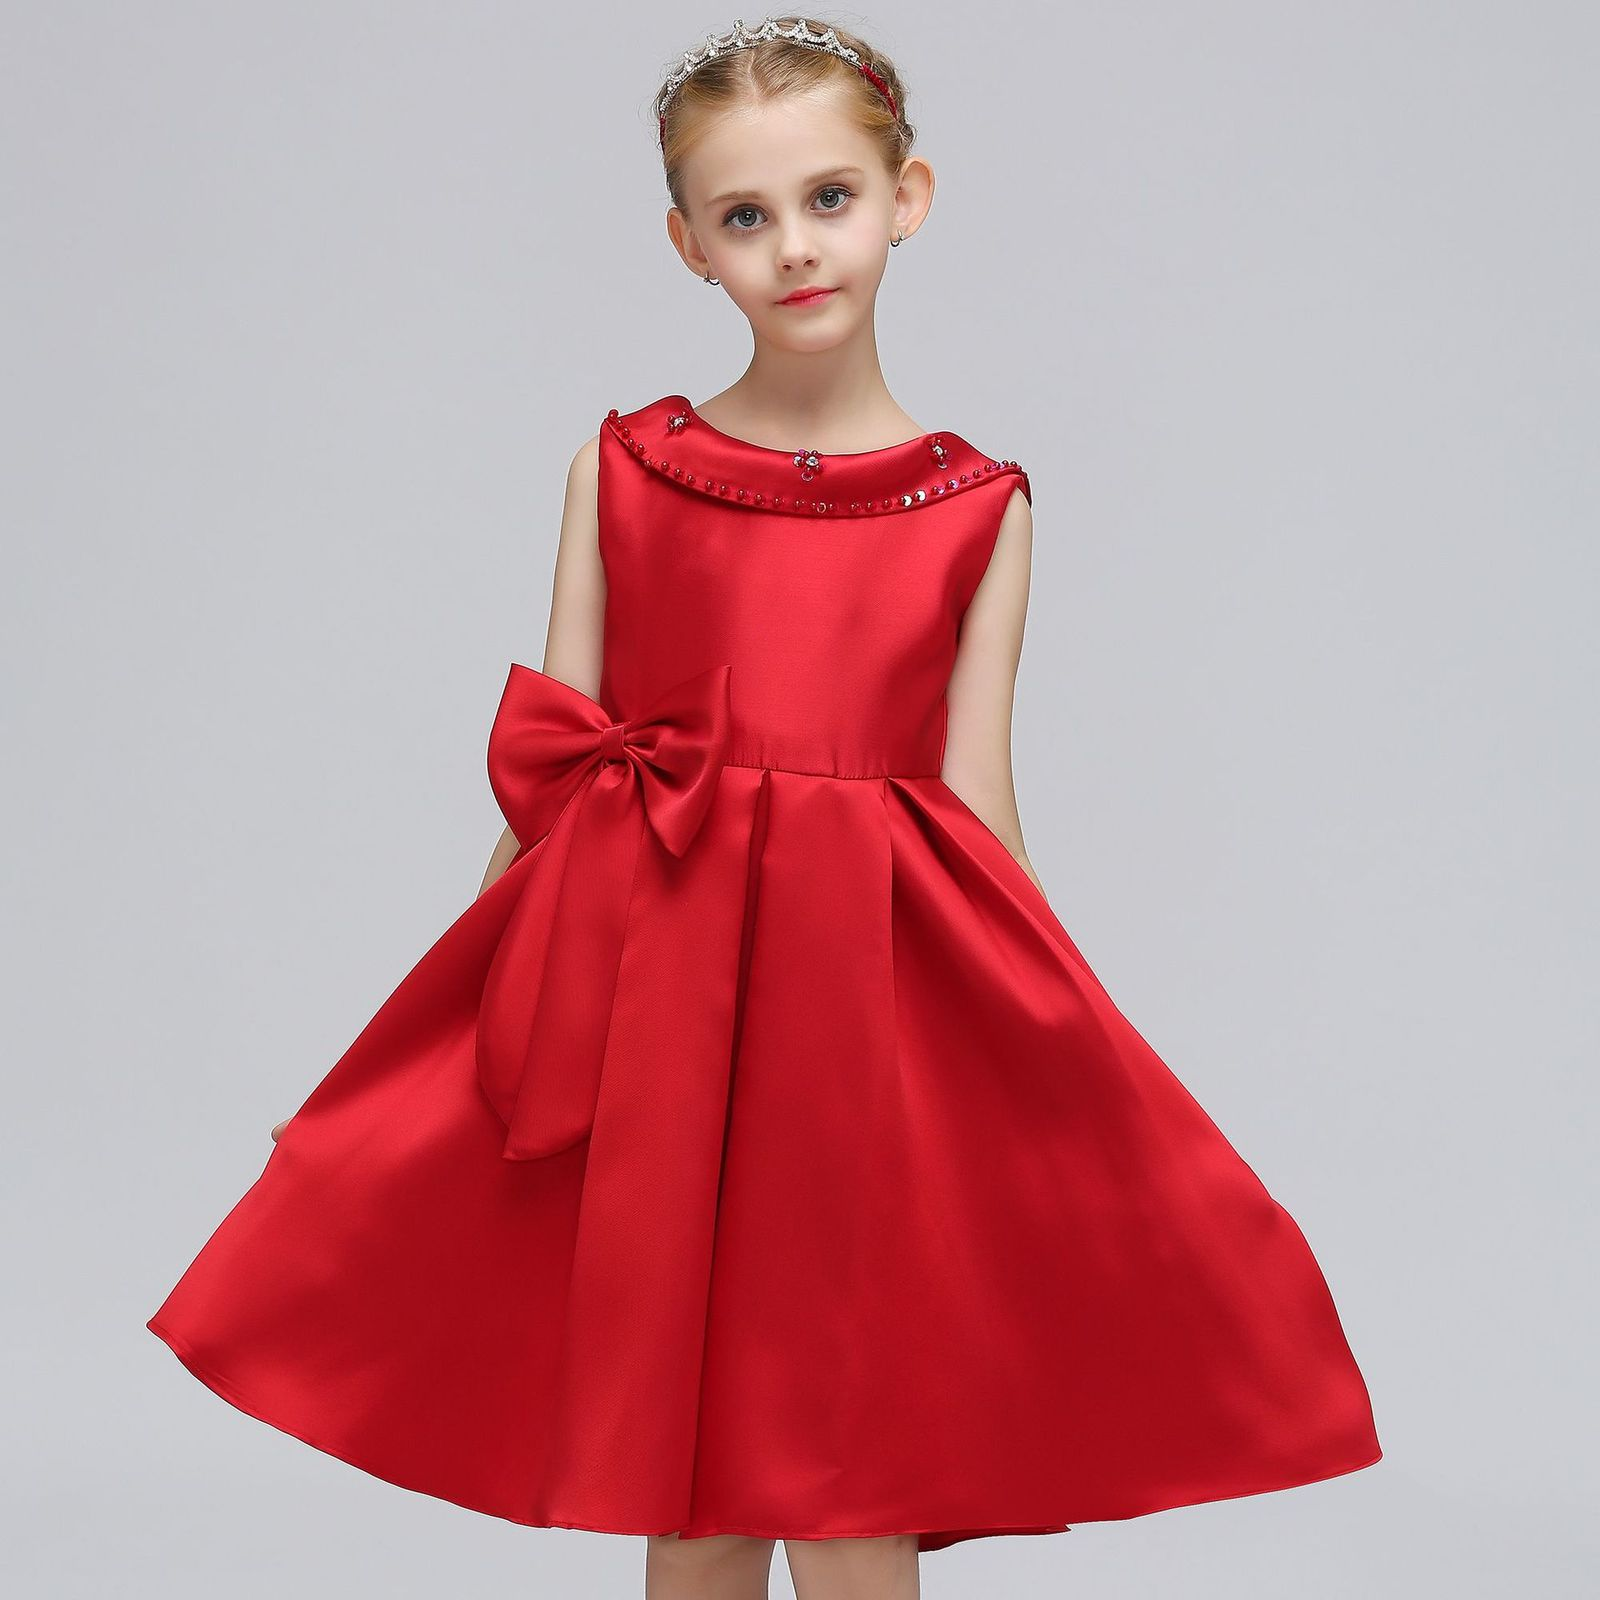 Red Satin Pricess Flower Girl Dress 2019 Cheap Ball Gown Wedding Kid Party Gowns